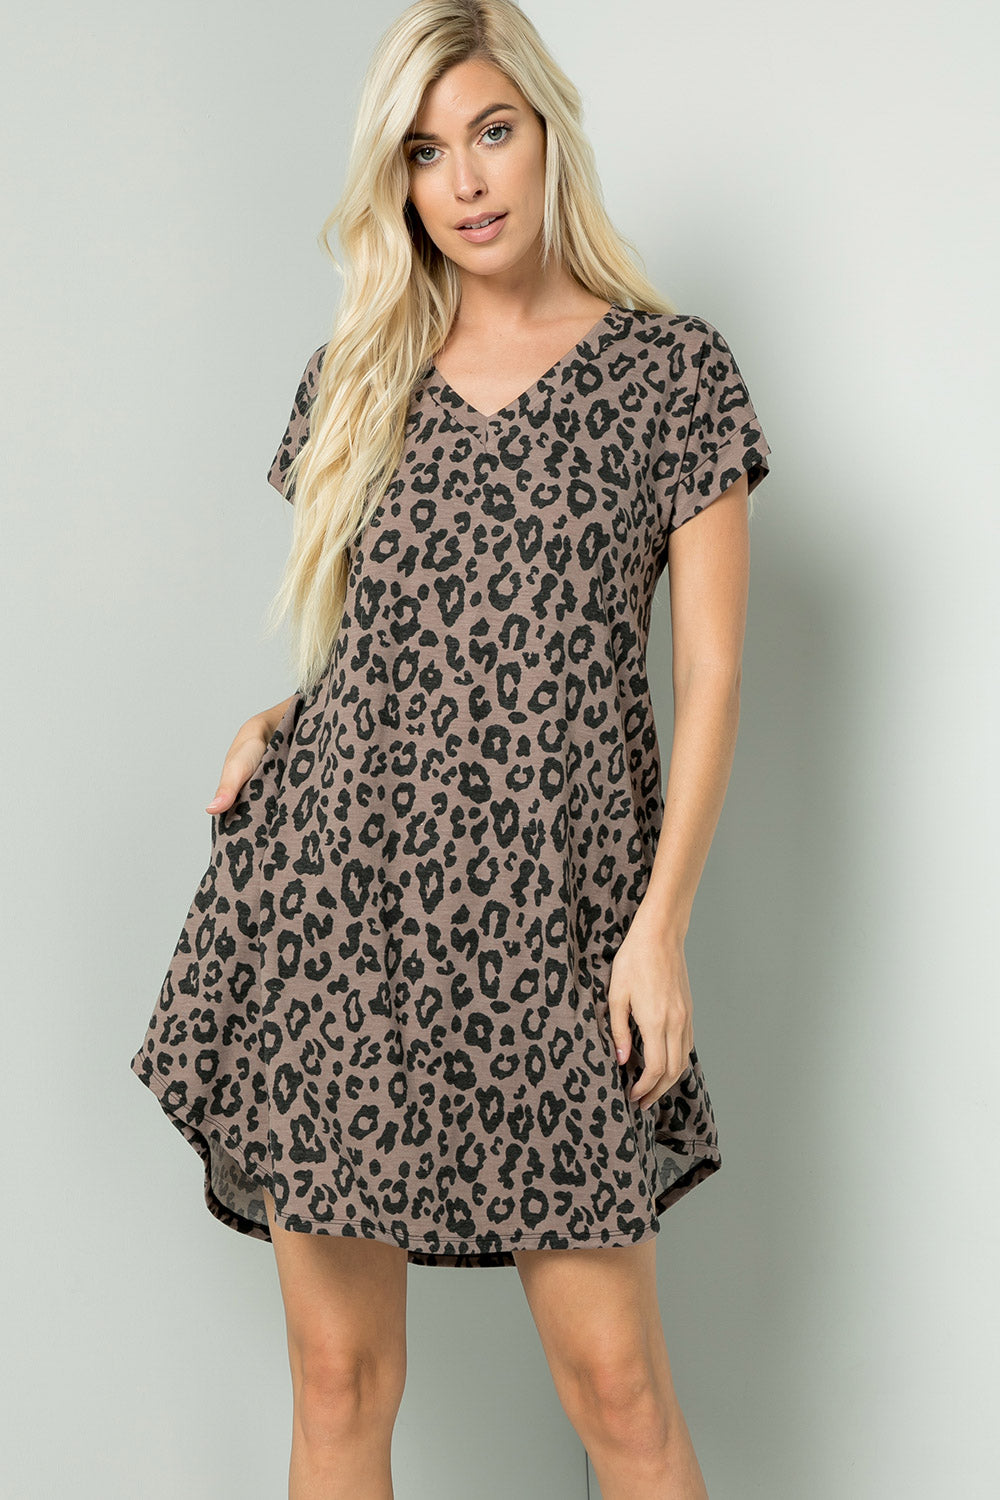 Leopard V-neck Tee Dress - Brown